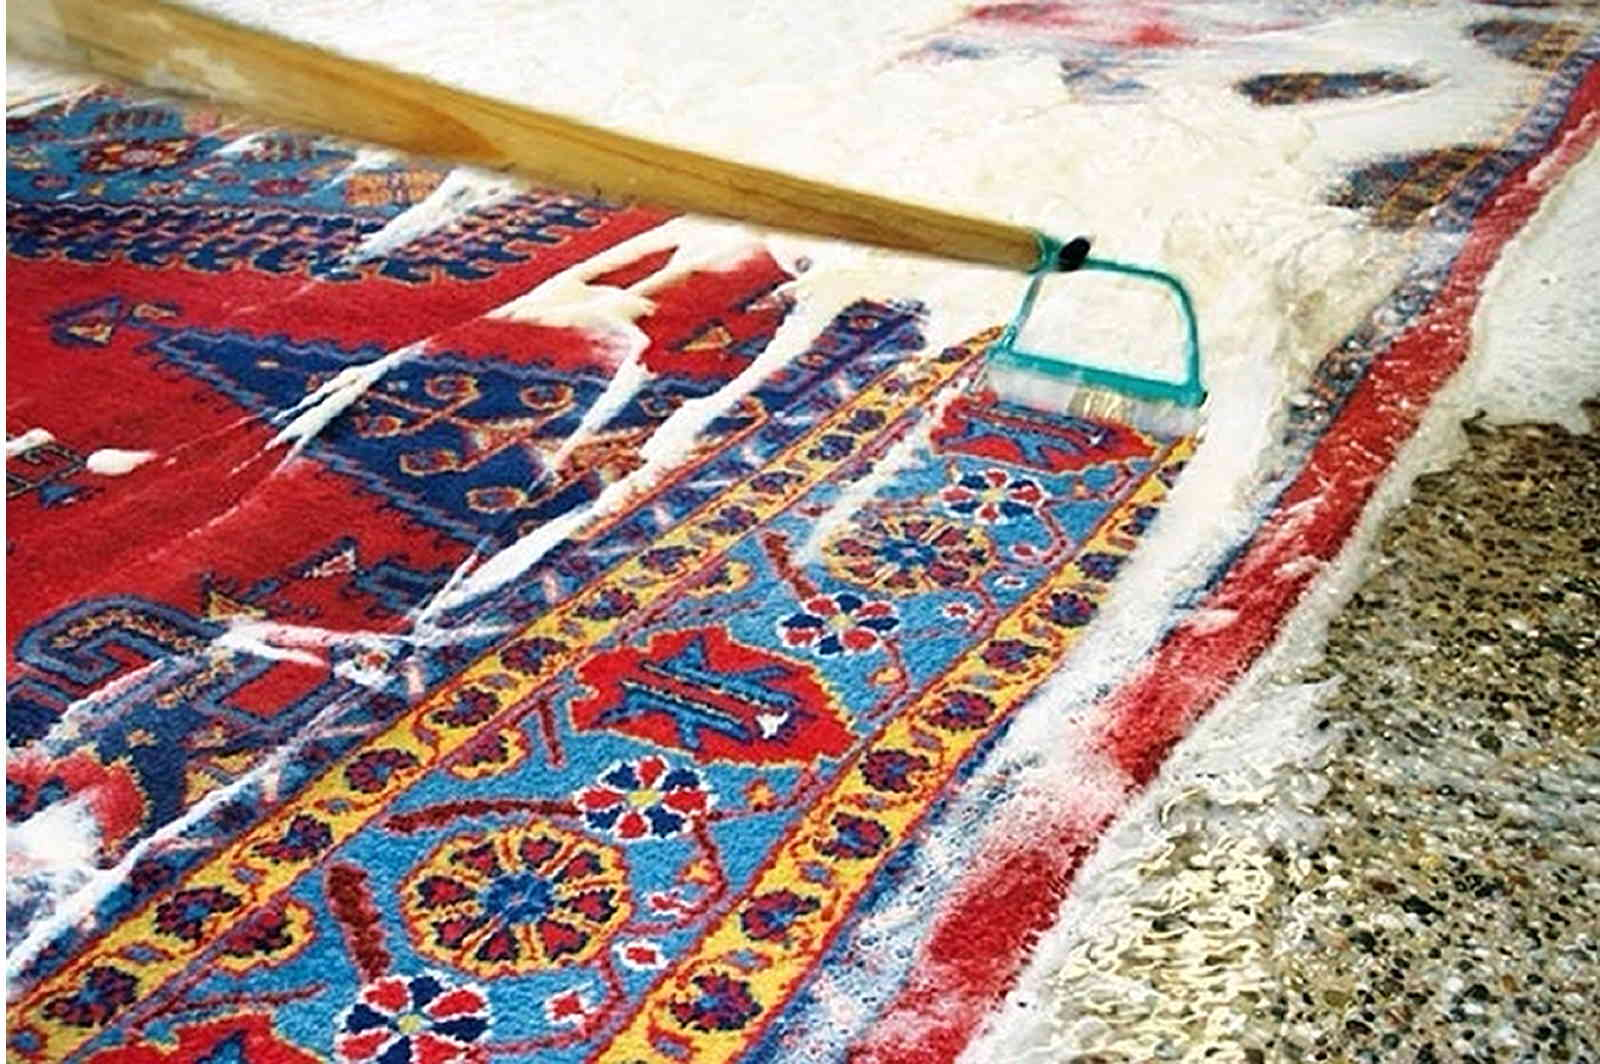 cleaning of carpet, cleaning of carpets, rug cleaner, rug cleaning hong kong, carpet cleaining, carpet cleaner Hong Kong Rug Cleaning, Hong Kong Carpet Washing